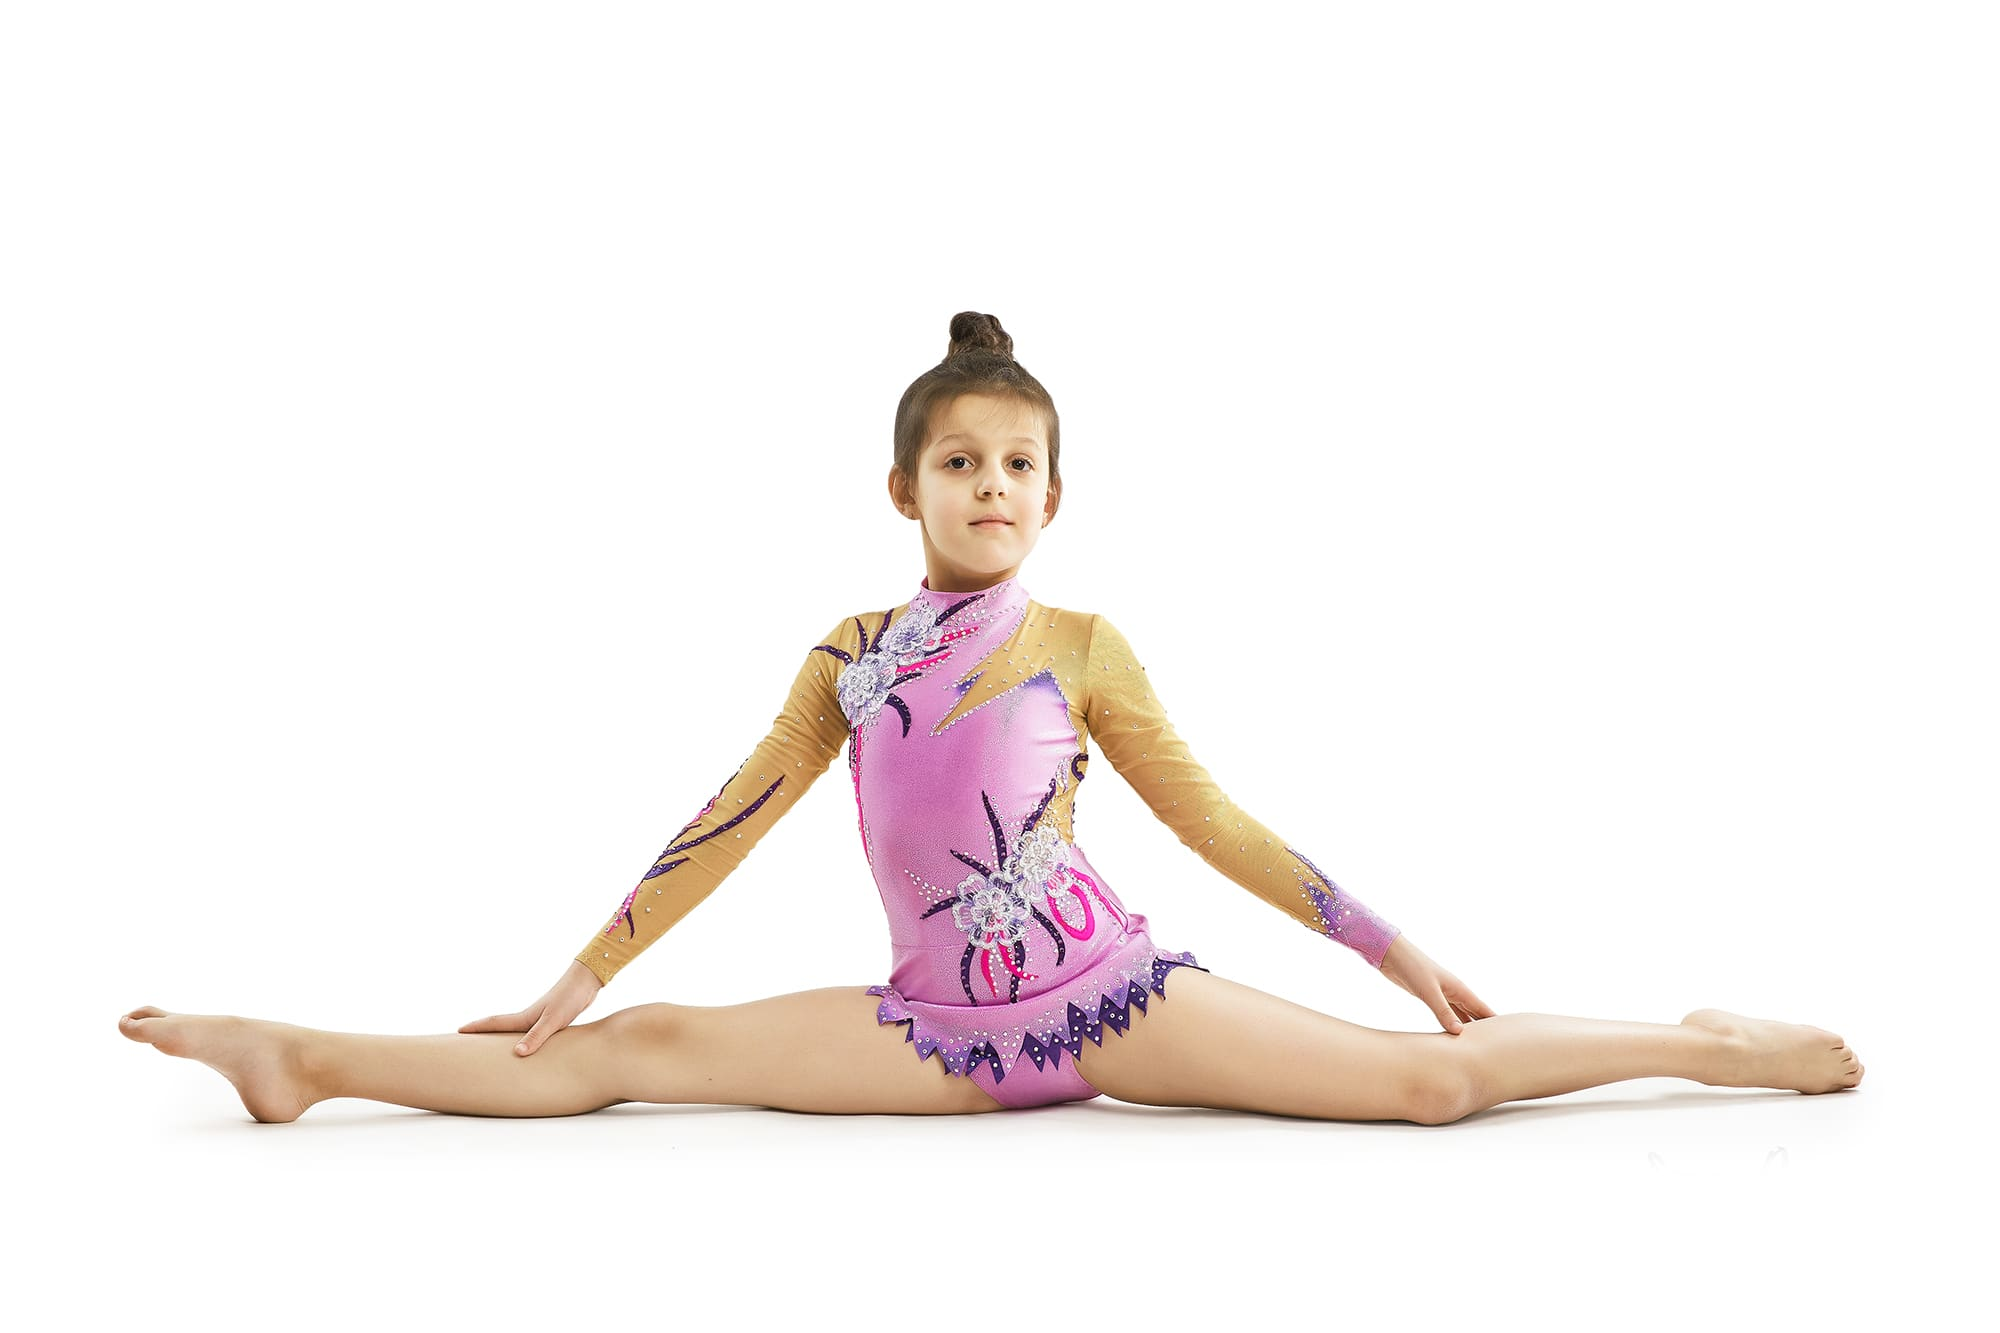 The gymnast in twine in lilac, dark purple, magento gymnastics leotard № 165 for competitions